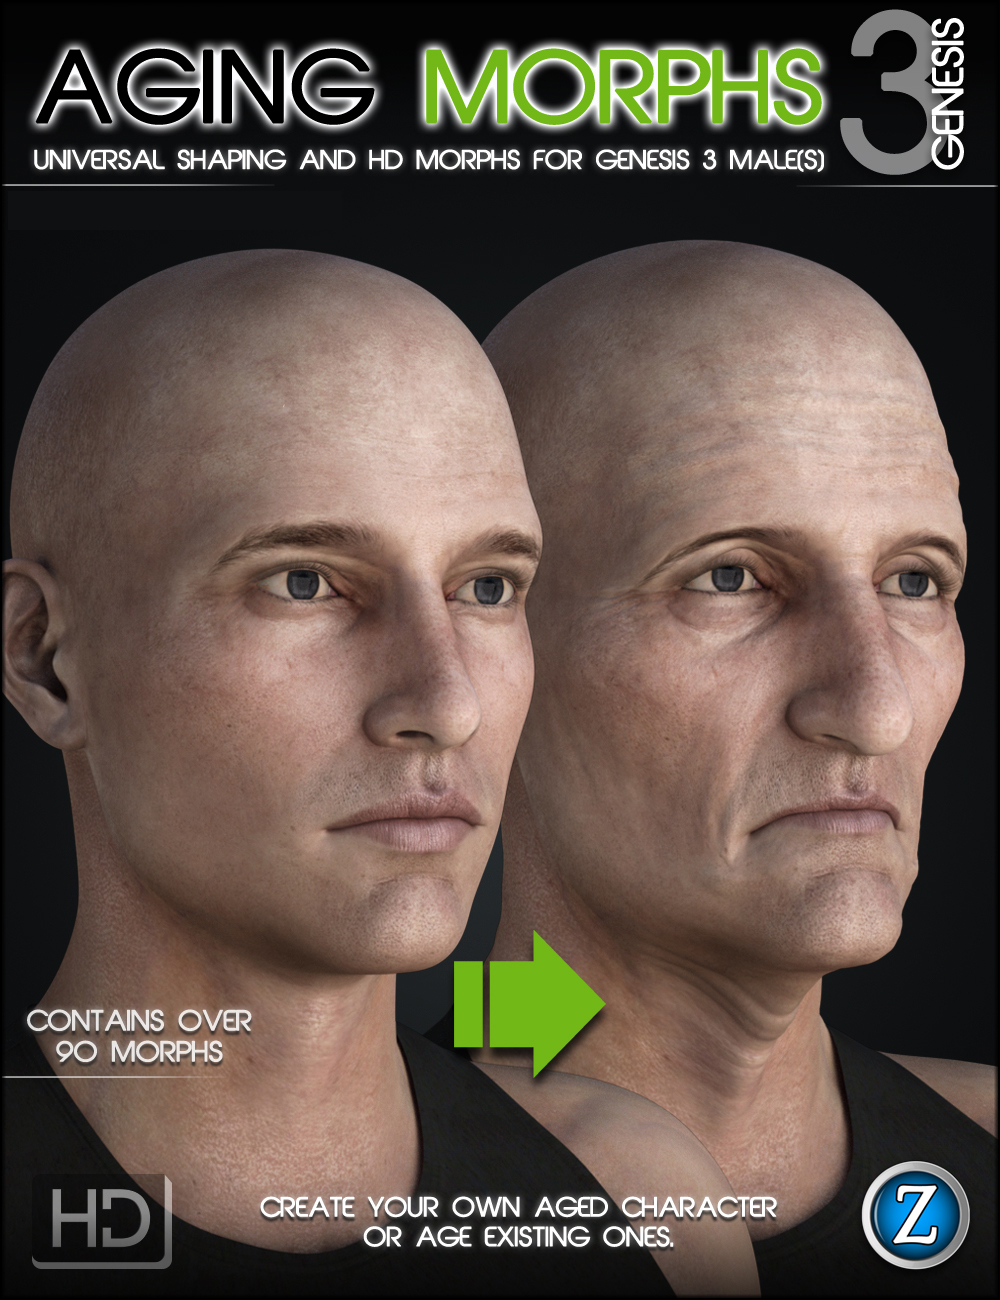 Aging Morphs 3 for Genesis 3 Male(s) by: Zev0, 3D Models by Daz 3D